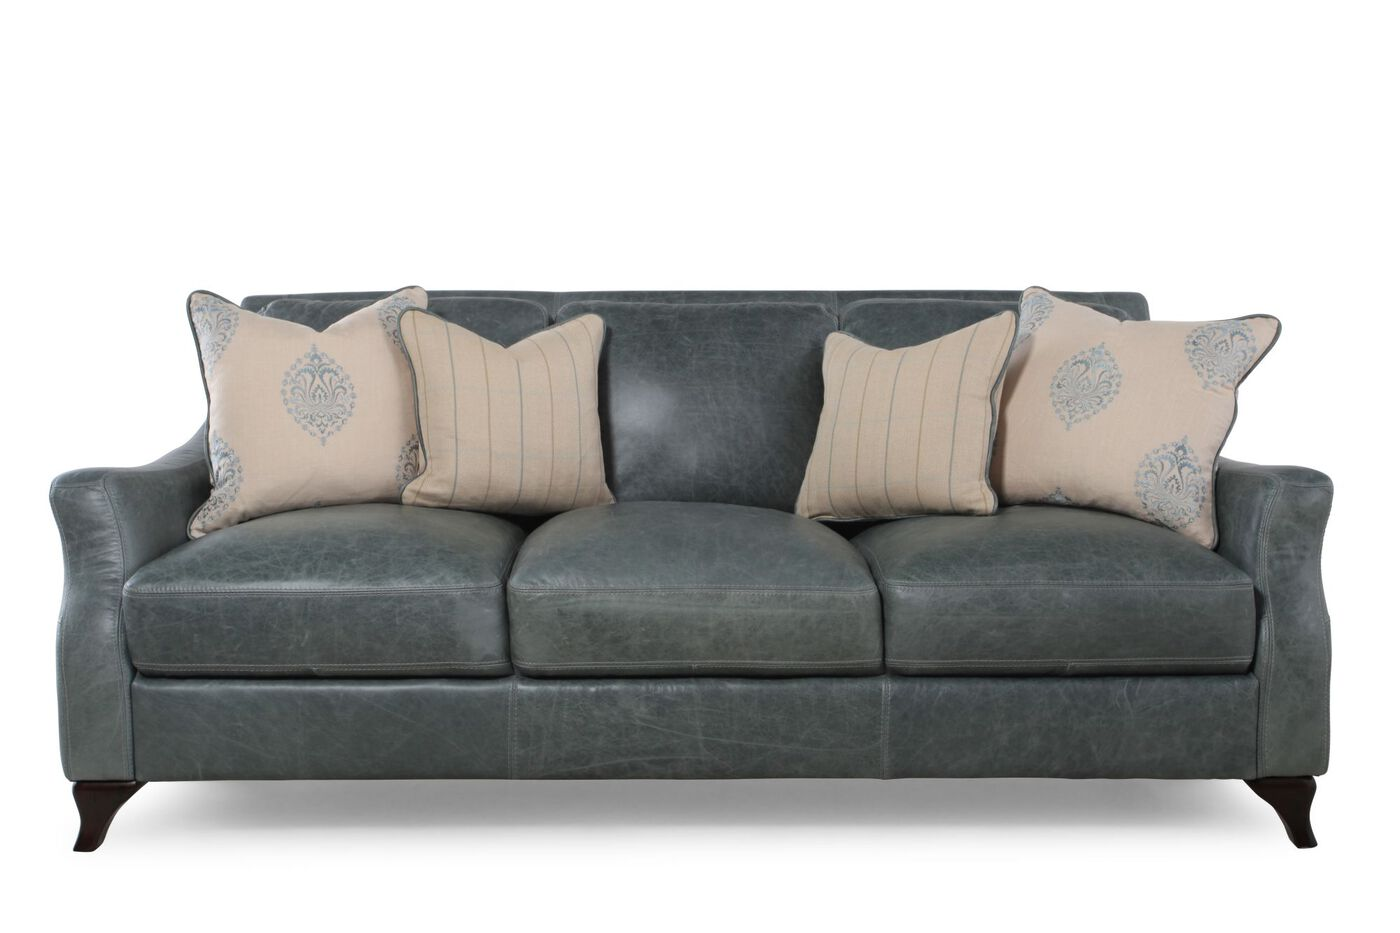 Blue leather sofa mathis brothers for Blue leather couch